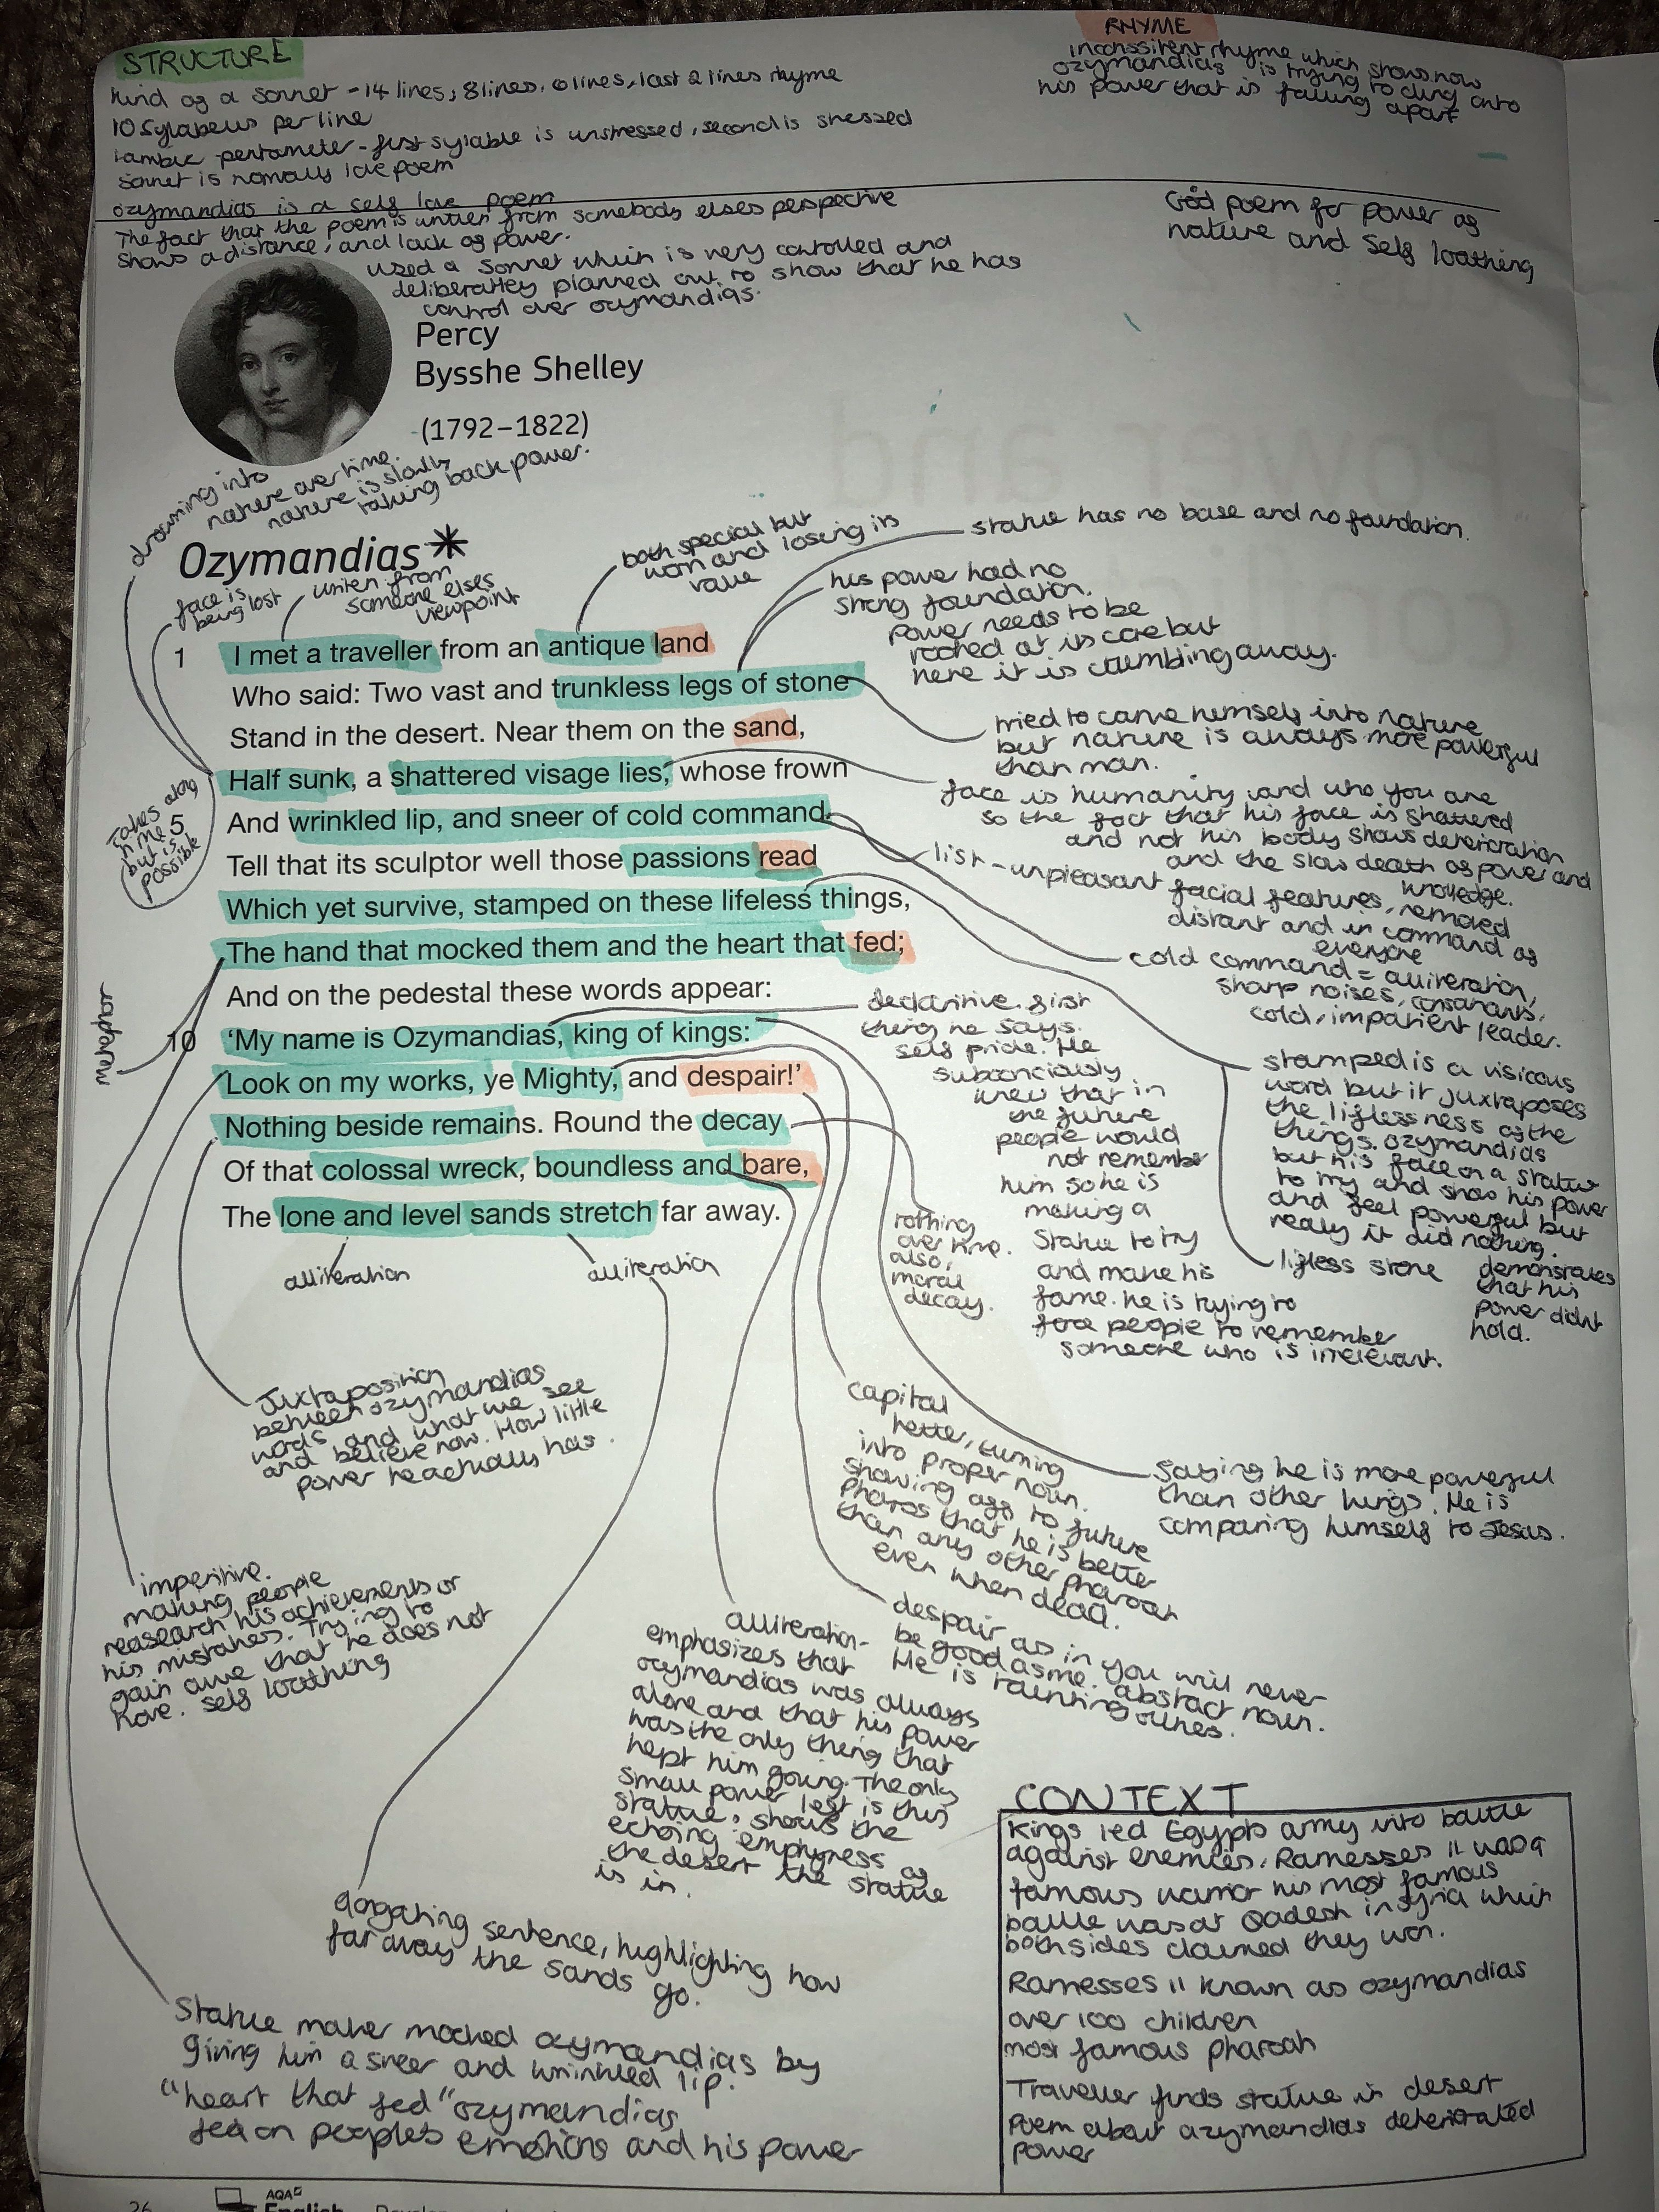 Gcse English Lit Power And Conflict Poem Ozymandia Revision Studyinspo Language Analysi Literature By Percy Bysshe Shelley Analysis